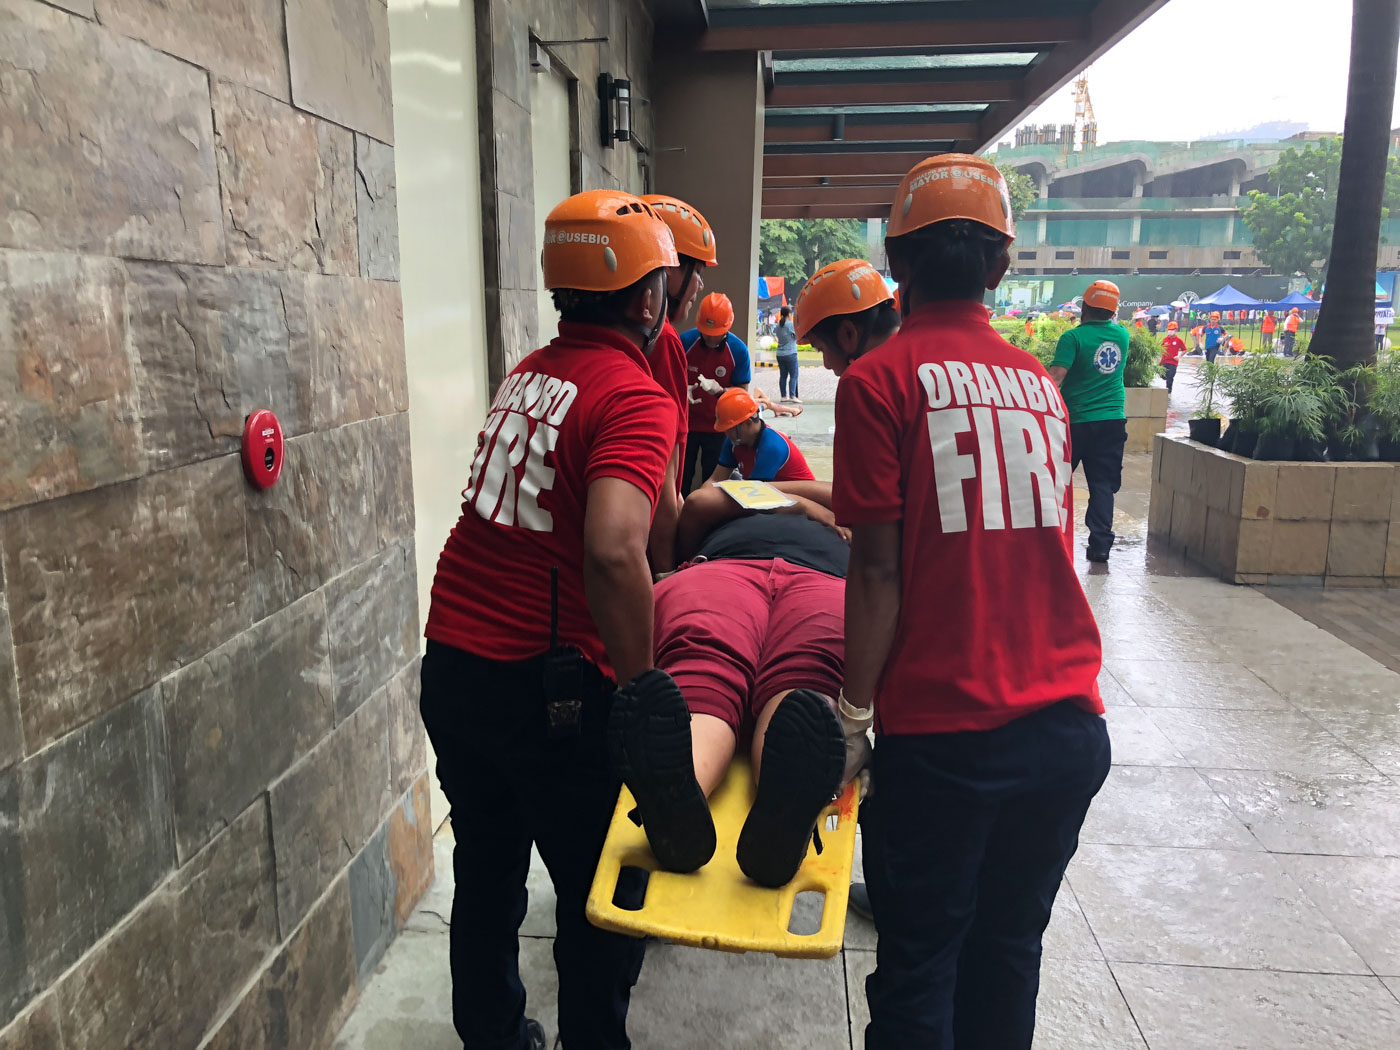 TO SAFETY. An injured civilian is carried on a stretcher during the 10th Pasig citywide earthquake drill. Photo by Samantha Bagayas/Rappler